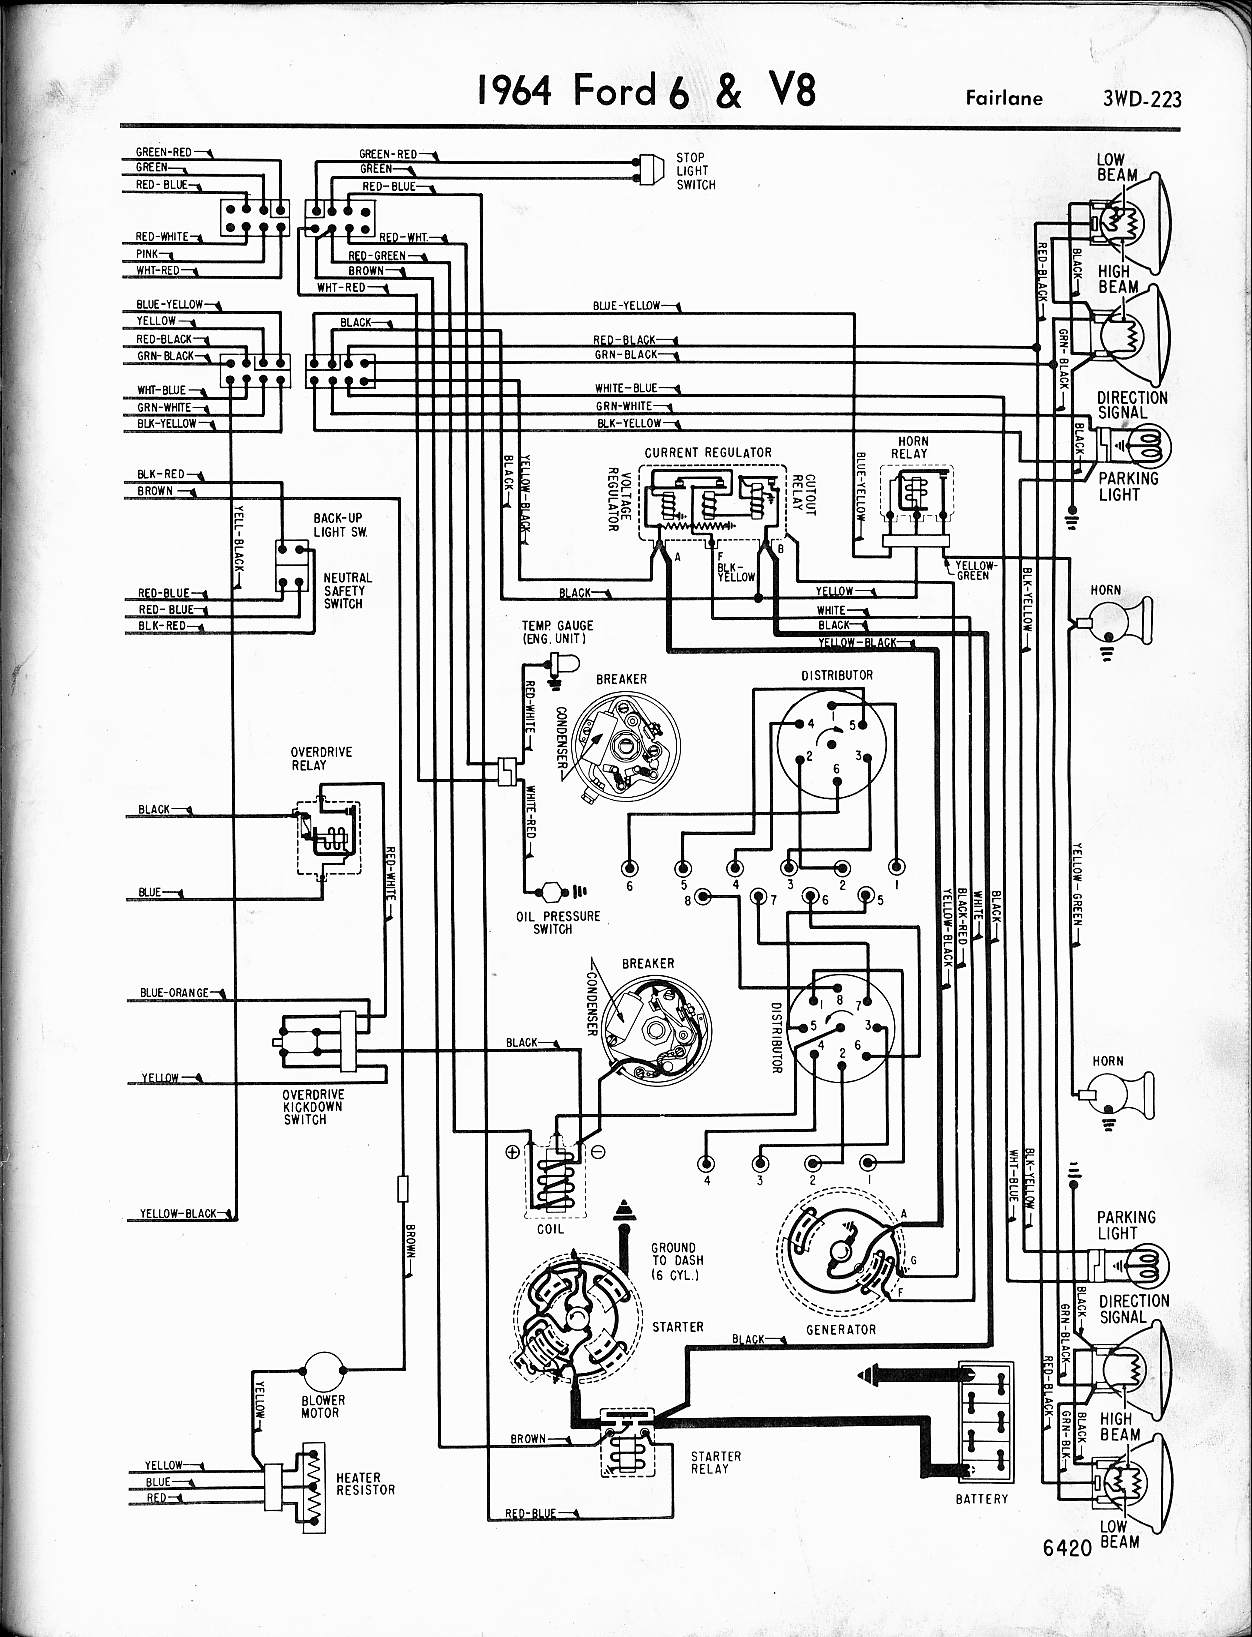 MWire5765 223 1964 1966 thunderbirfd wiring schematic 66 mustang wiring diagram 1966 ford truck wiring diagram at eliteediting.co